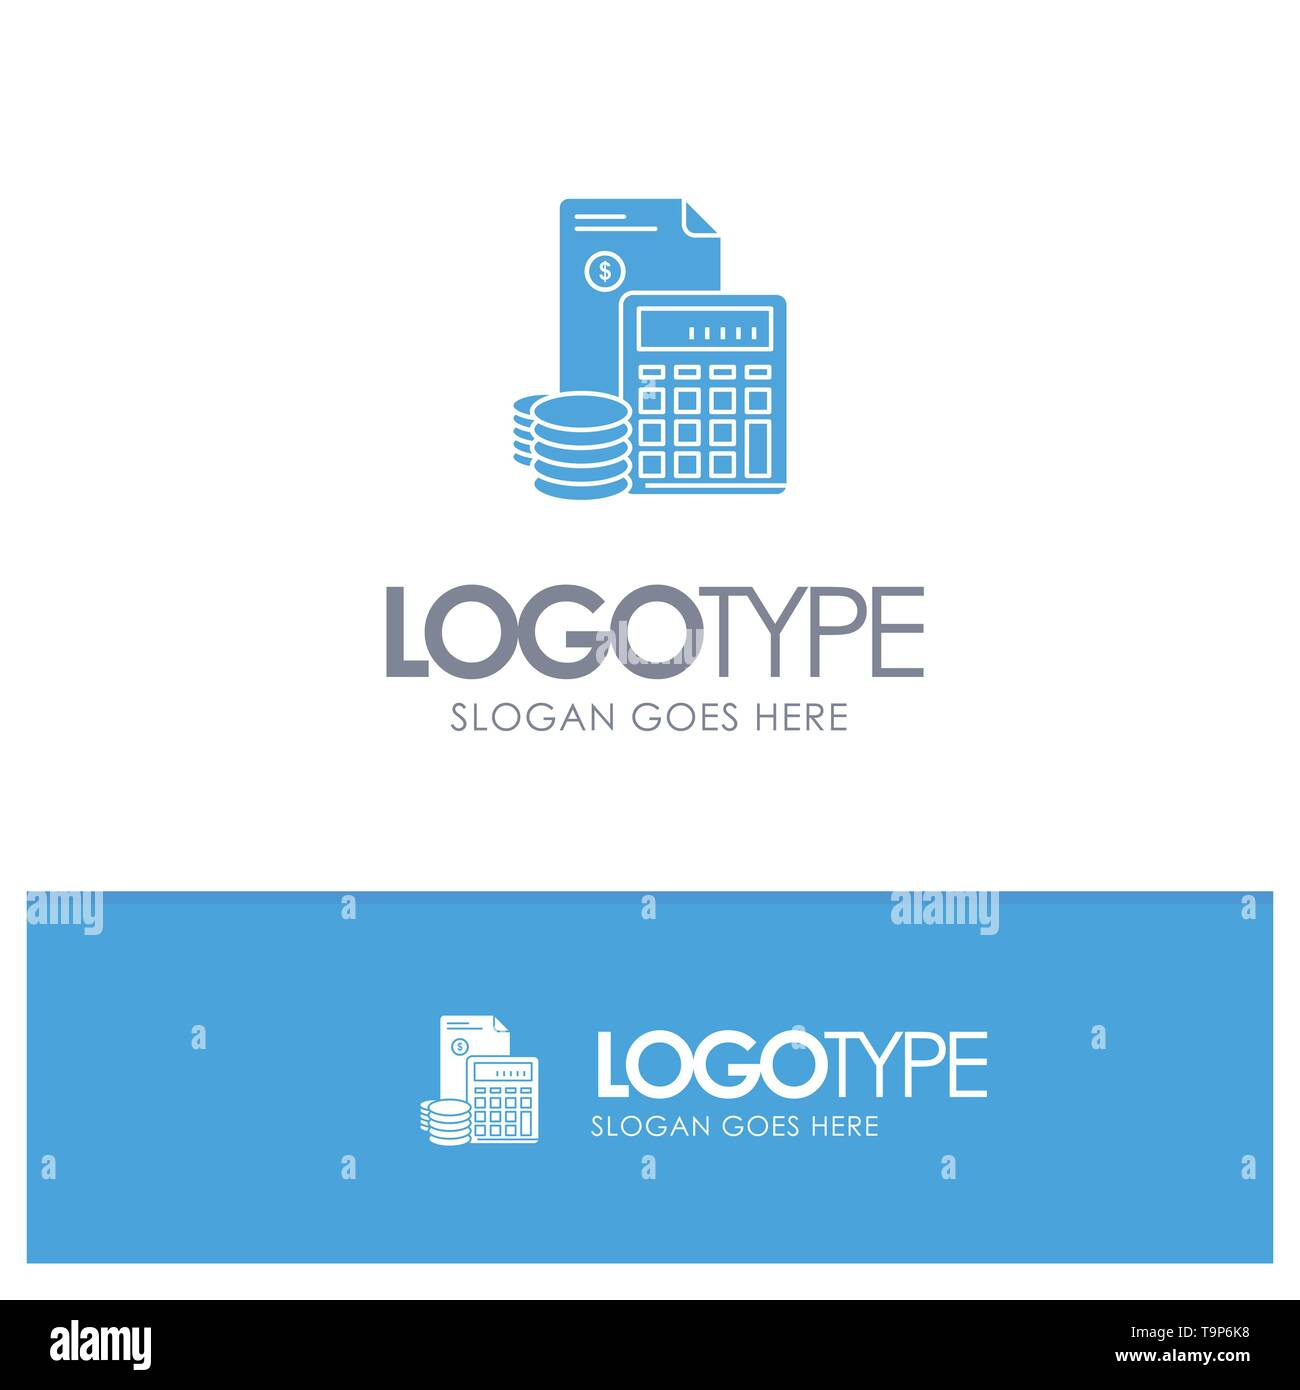 Investment, Accumulation, Business, Debt, Savings, Calculator, Coins Blue Solid Logo with place for tagline - Stock Image